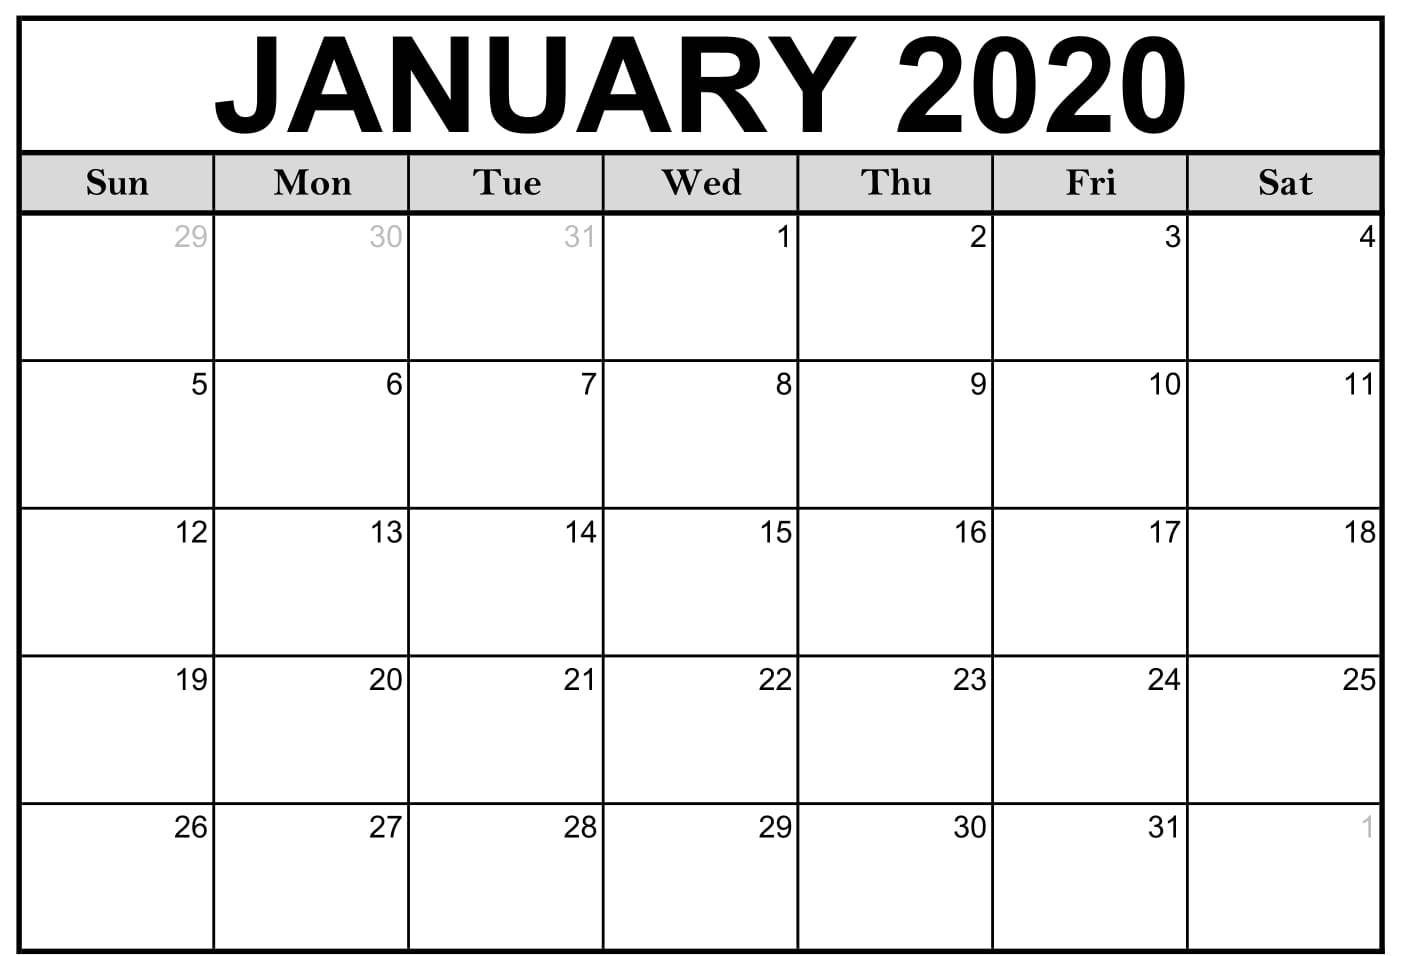 January 2020 Calendar Template | Free Printable Calendar